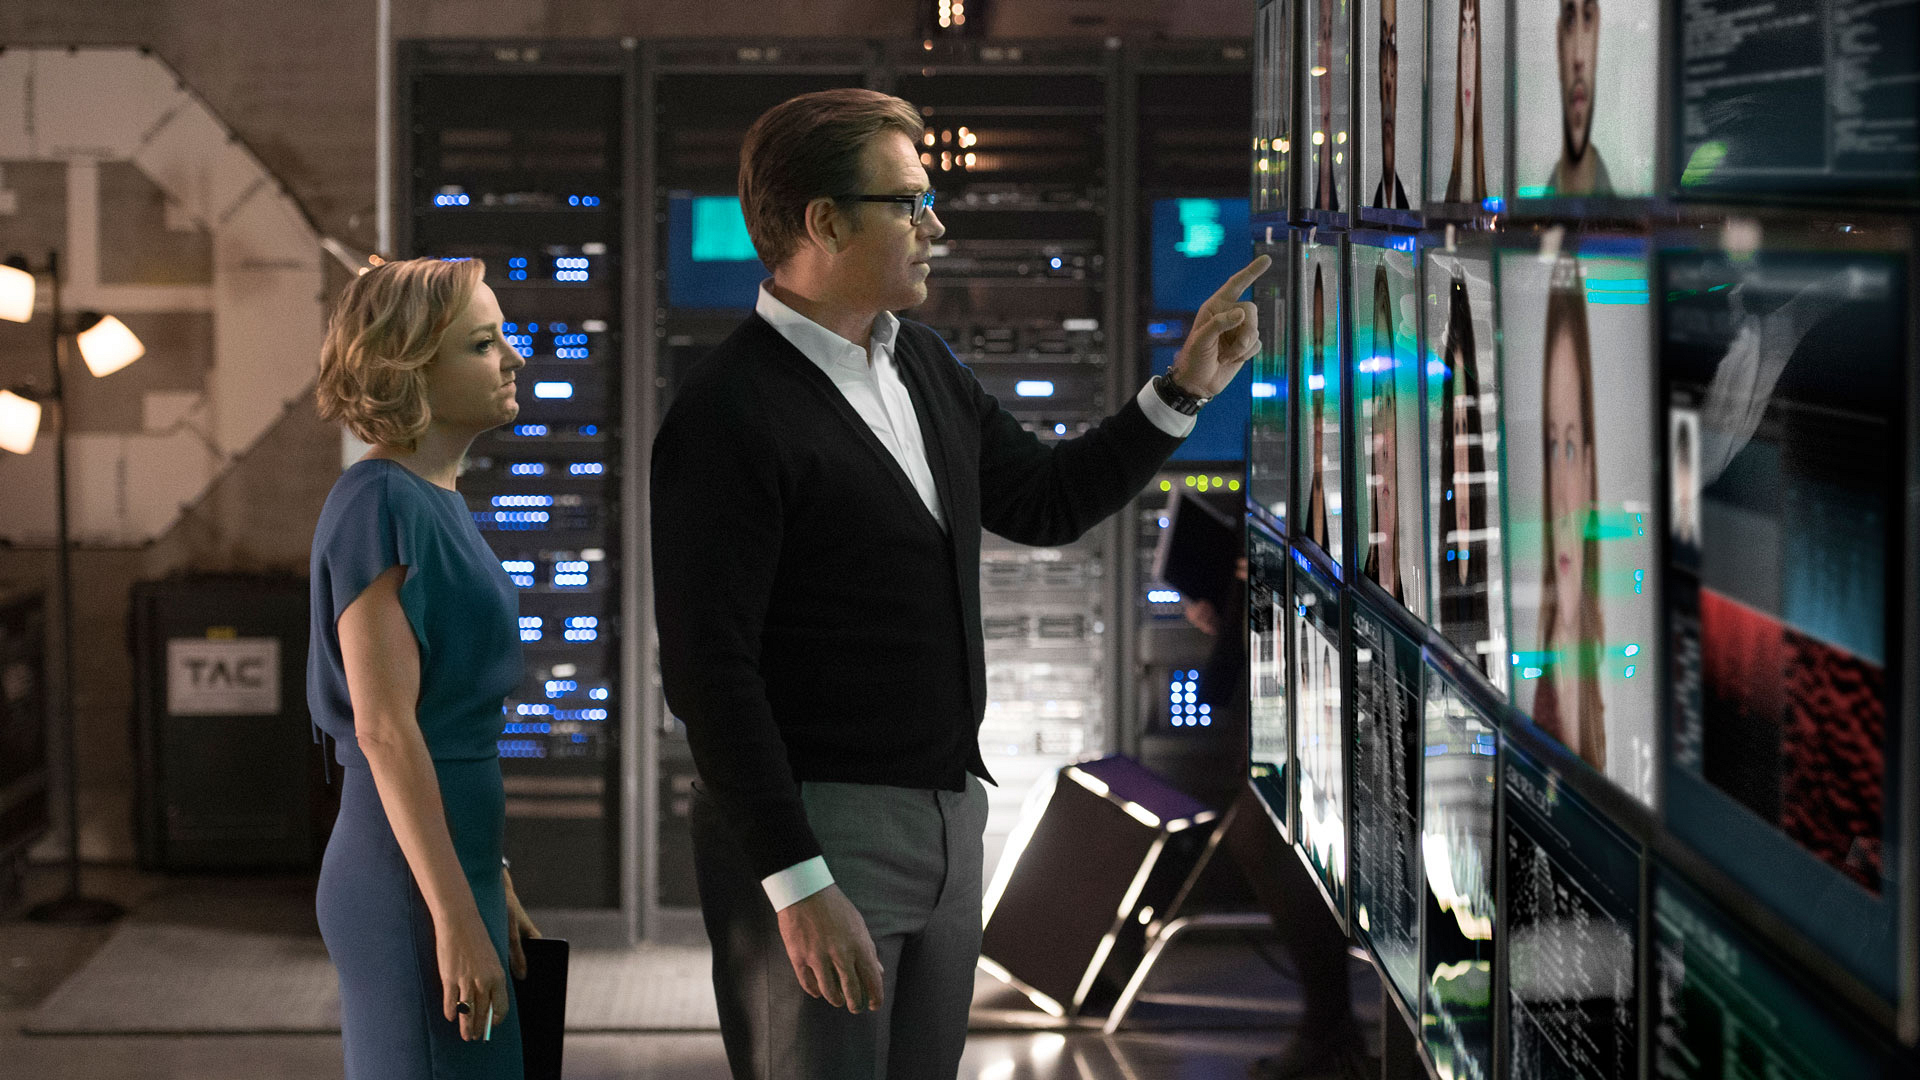 New series Bull premieres on Tuesday, Sept. 20 at 9/8c.